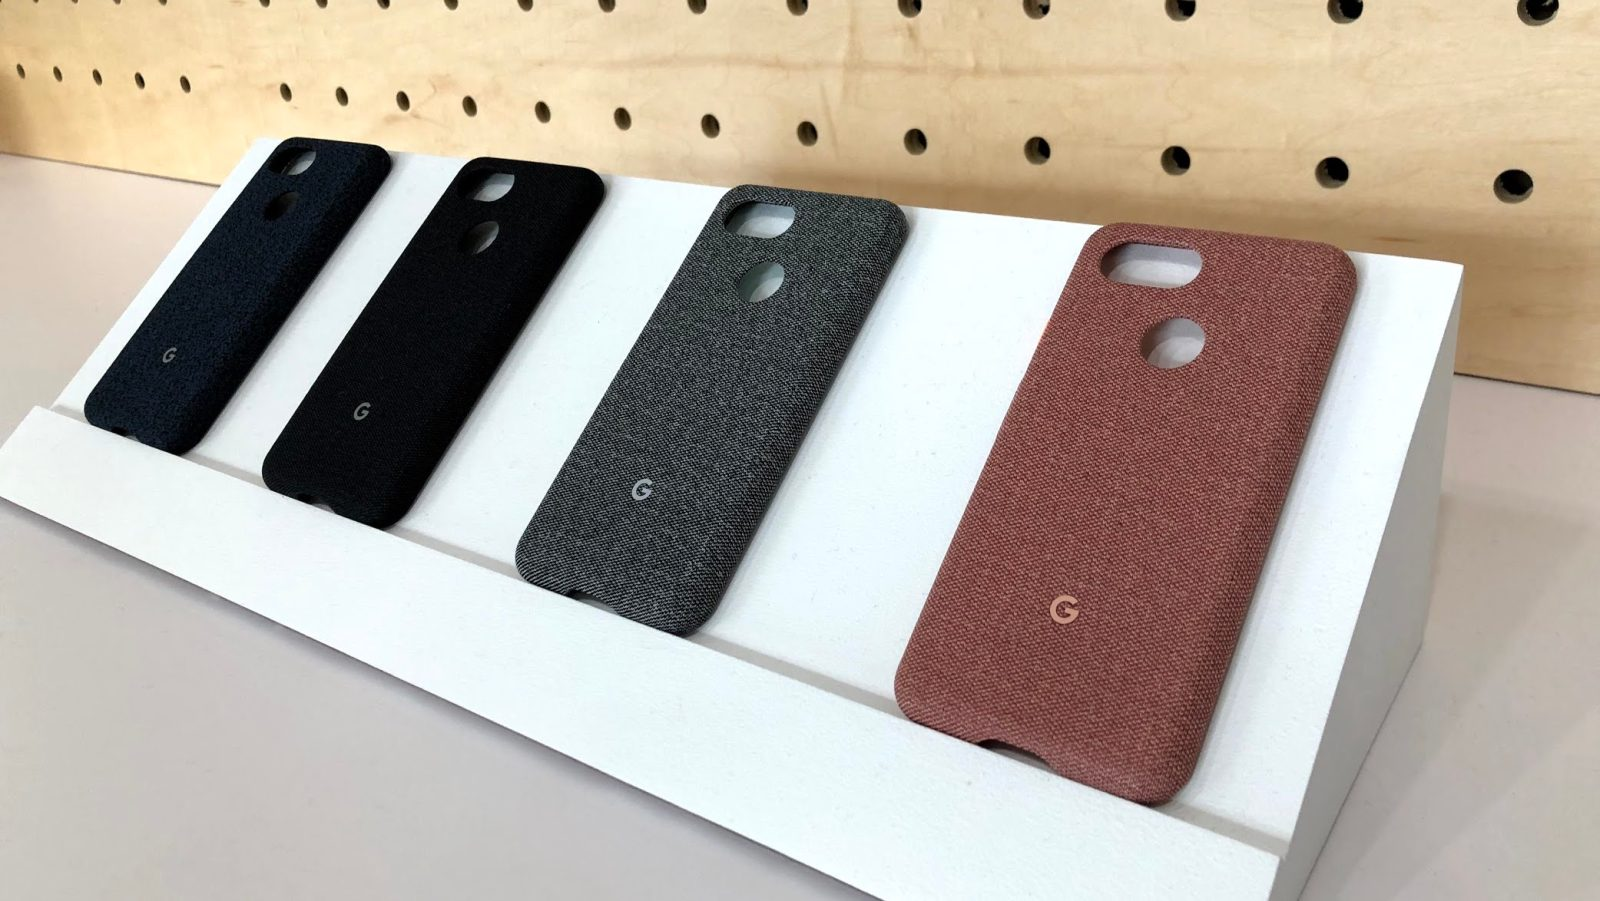 newest 9c6f2 707c2 Hands-on: Every 'Made by Google' fabric case for Pixel 3 and Pixel 3 ...